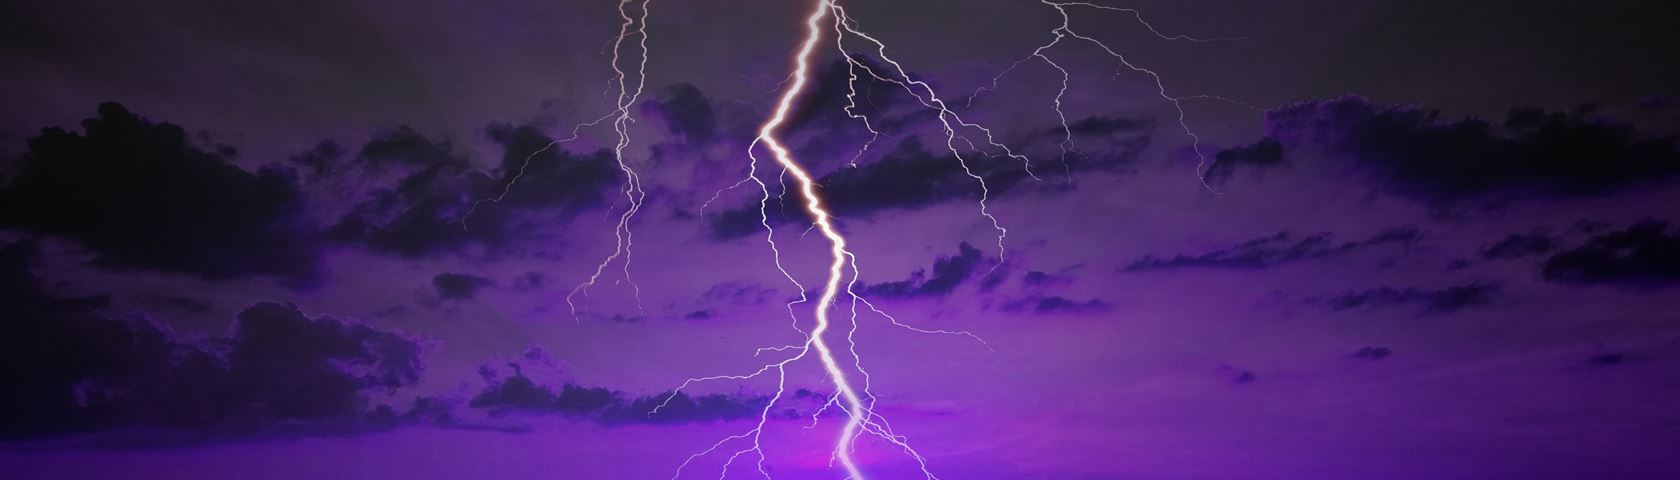 Lightning Storm Clouds Photo